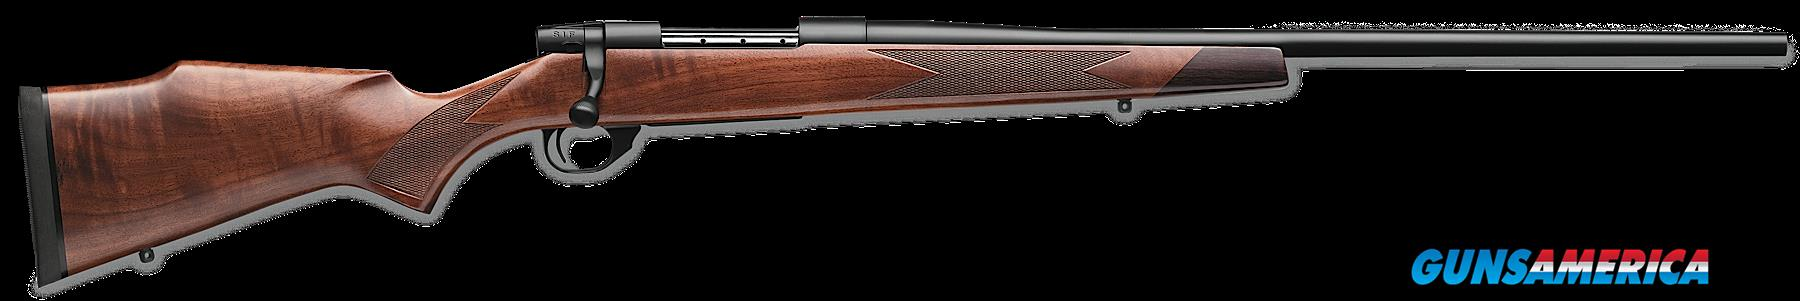 "Weatherby VDT243NR4O Vanguard Series 2 Sporter Bolt 243 Winchester 24"" 5+1 Walnut Stk Blued  Guns > Rifles > Weatherby Rifles > Sporting"